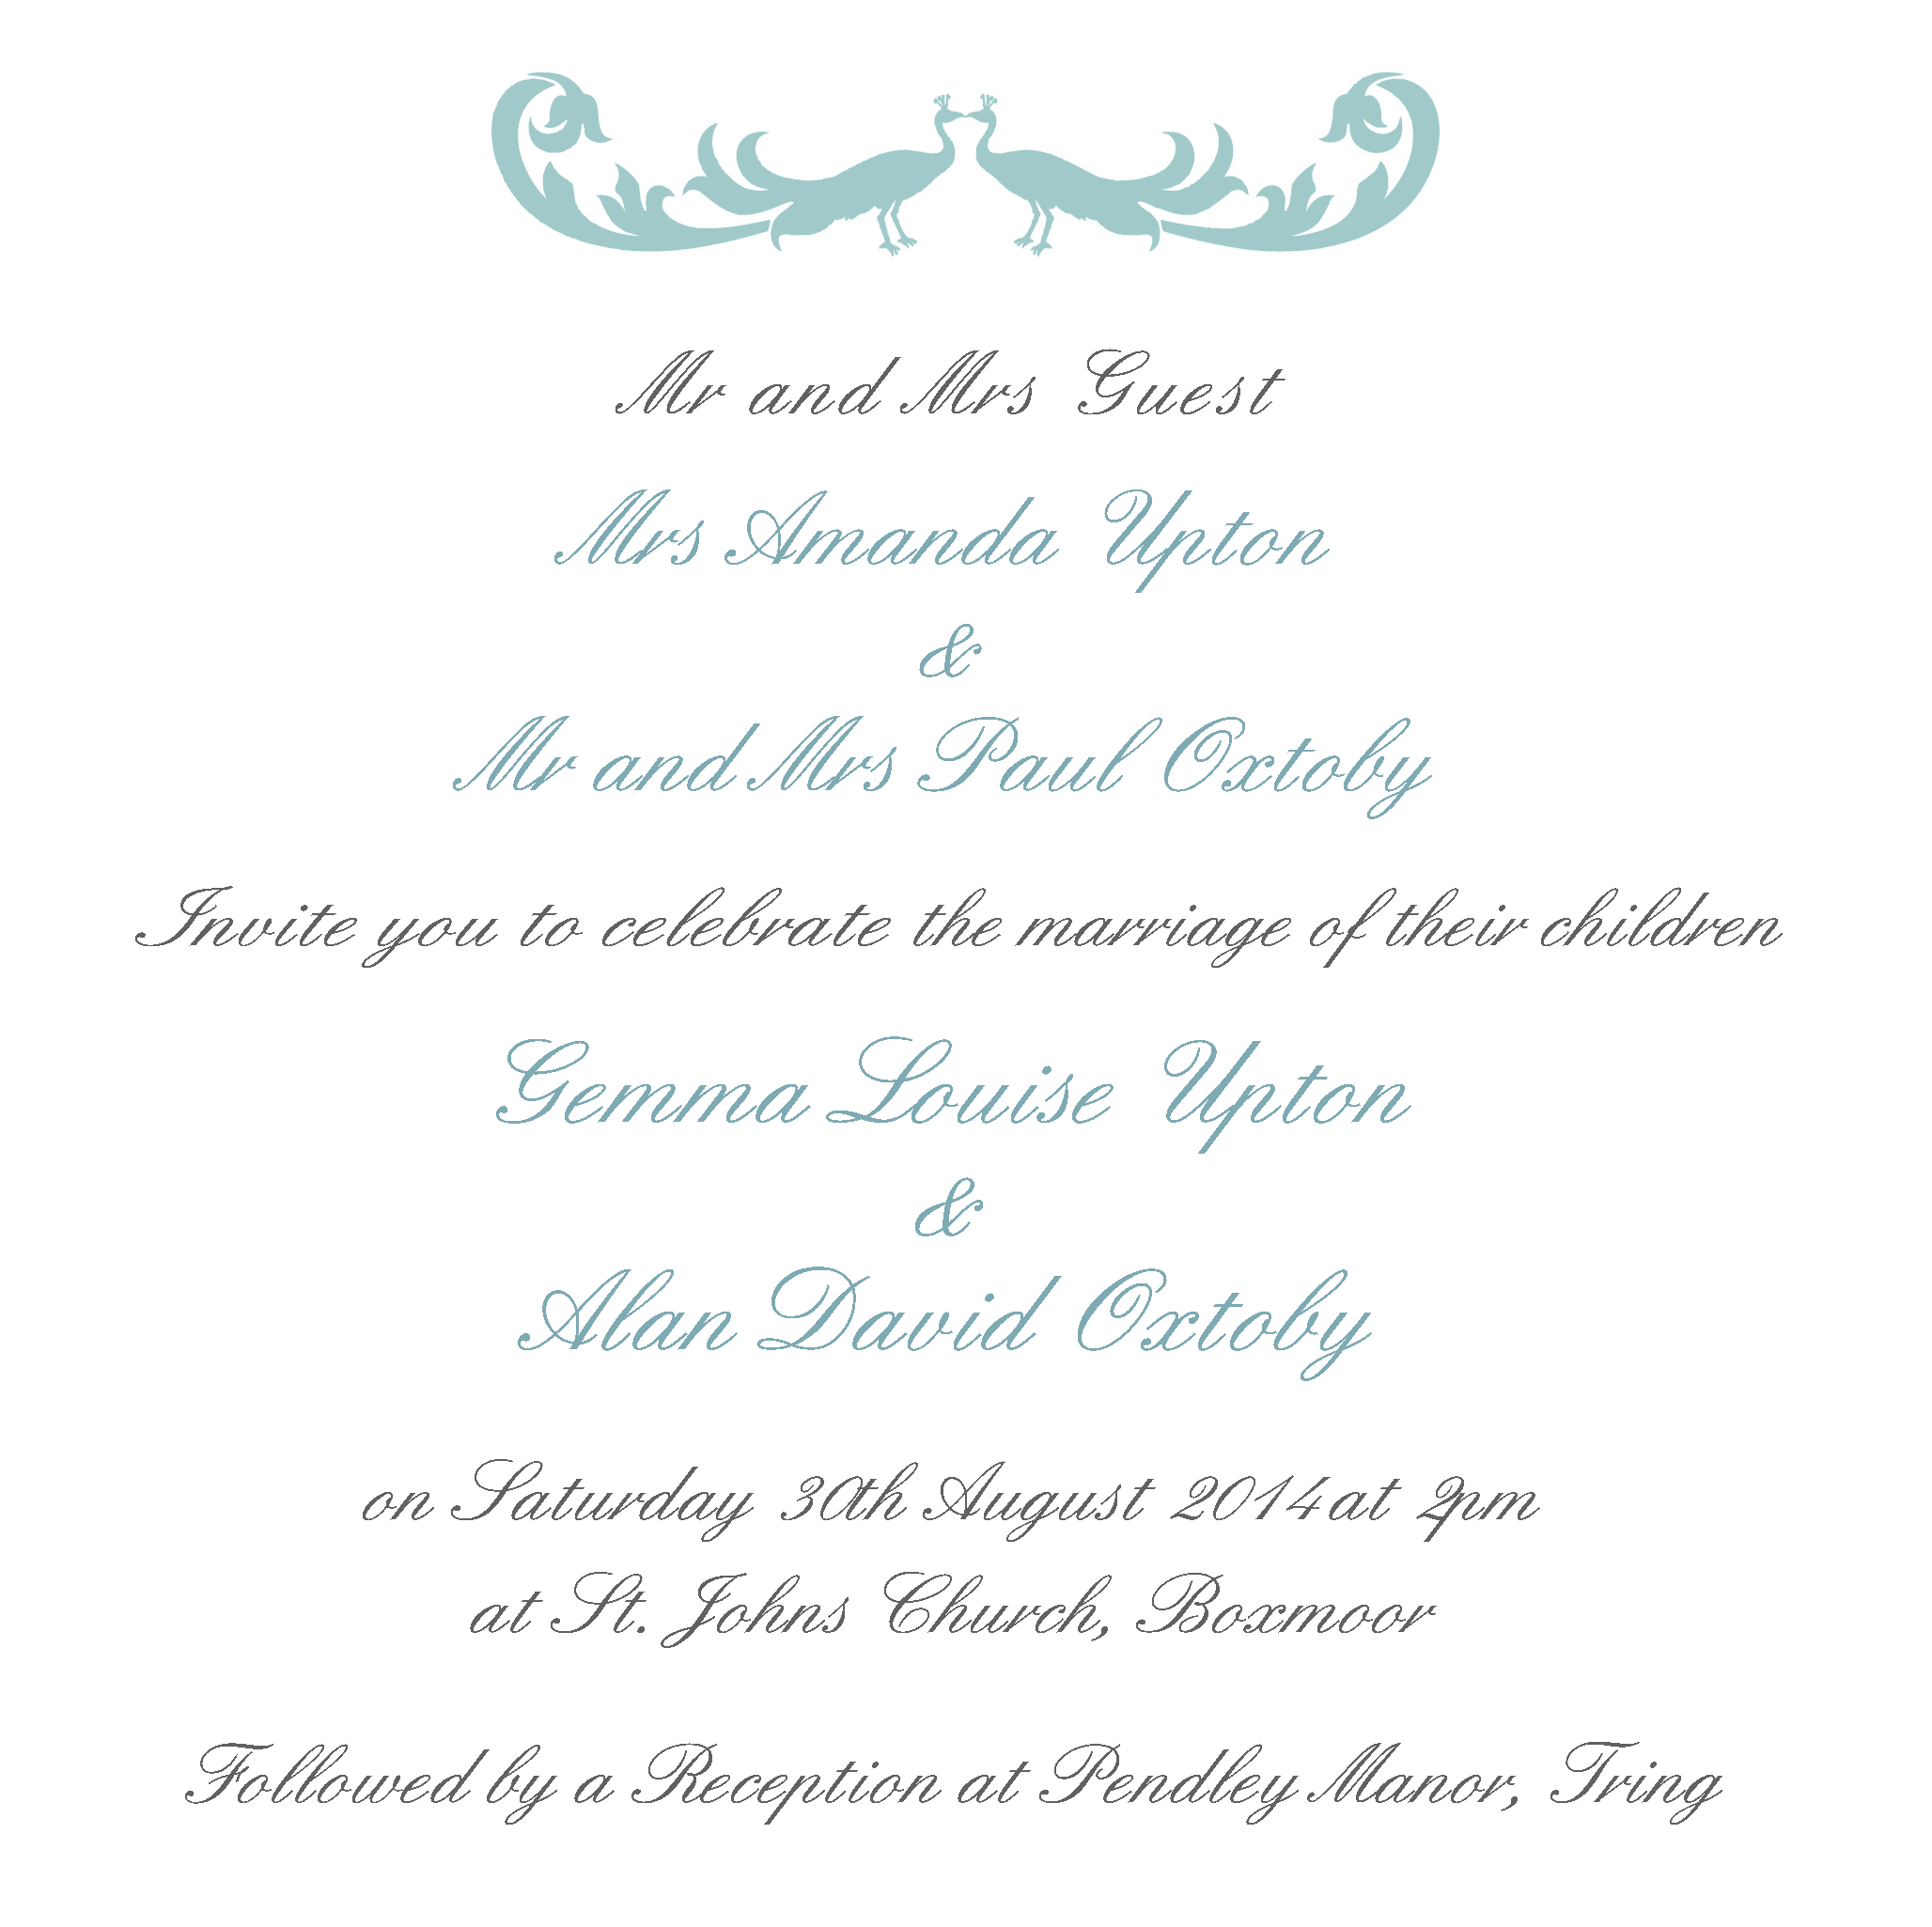 wedding stationery emporium dreams With wedding invitation wording from bride and groom and parents